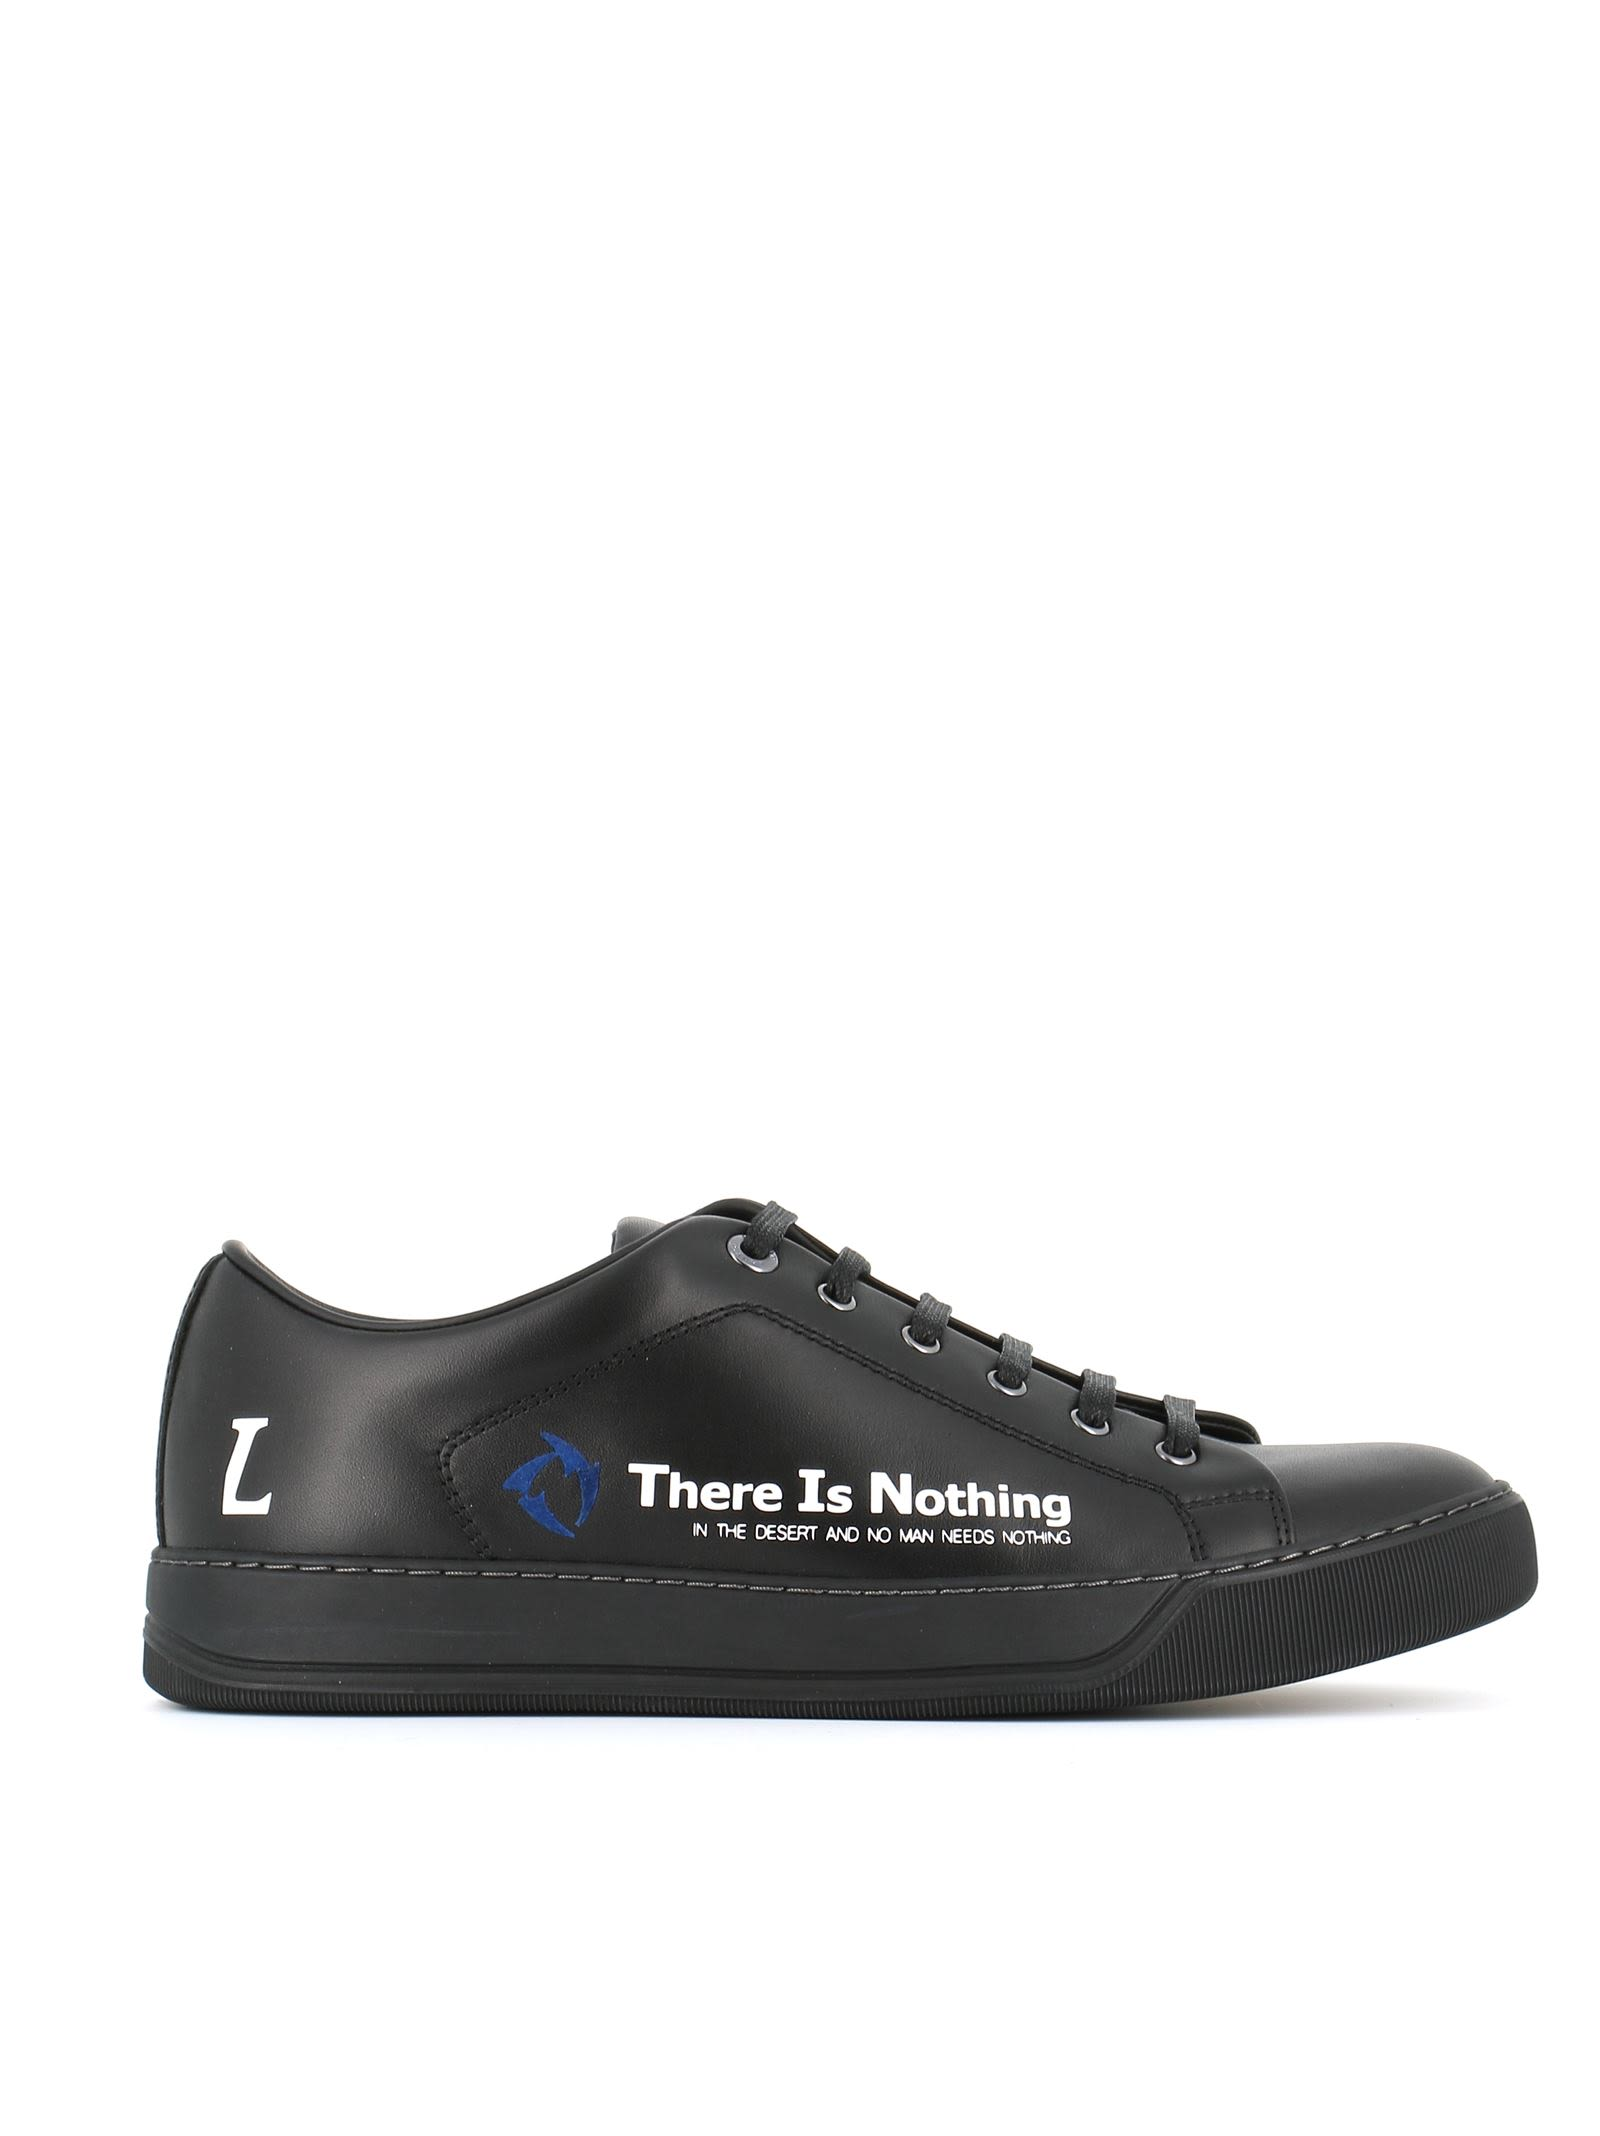 Lanvin Sneakers Low Top With Slogan